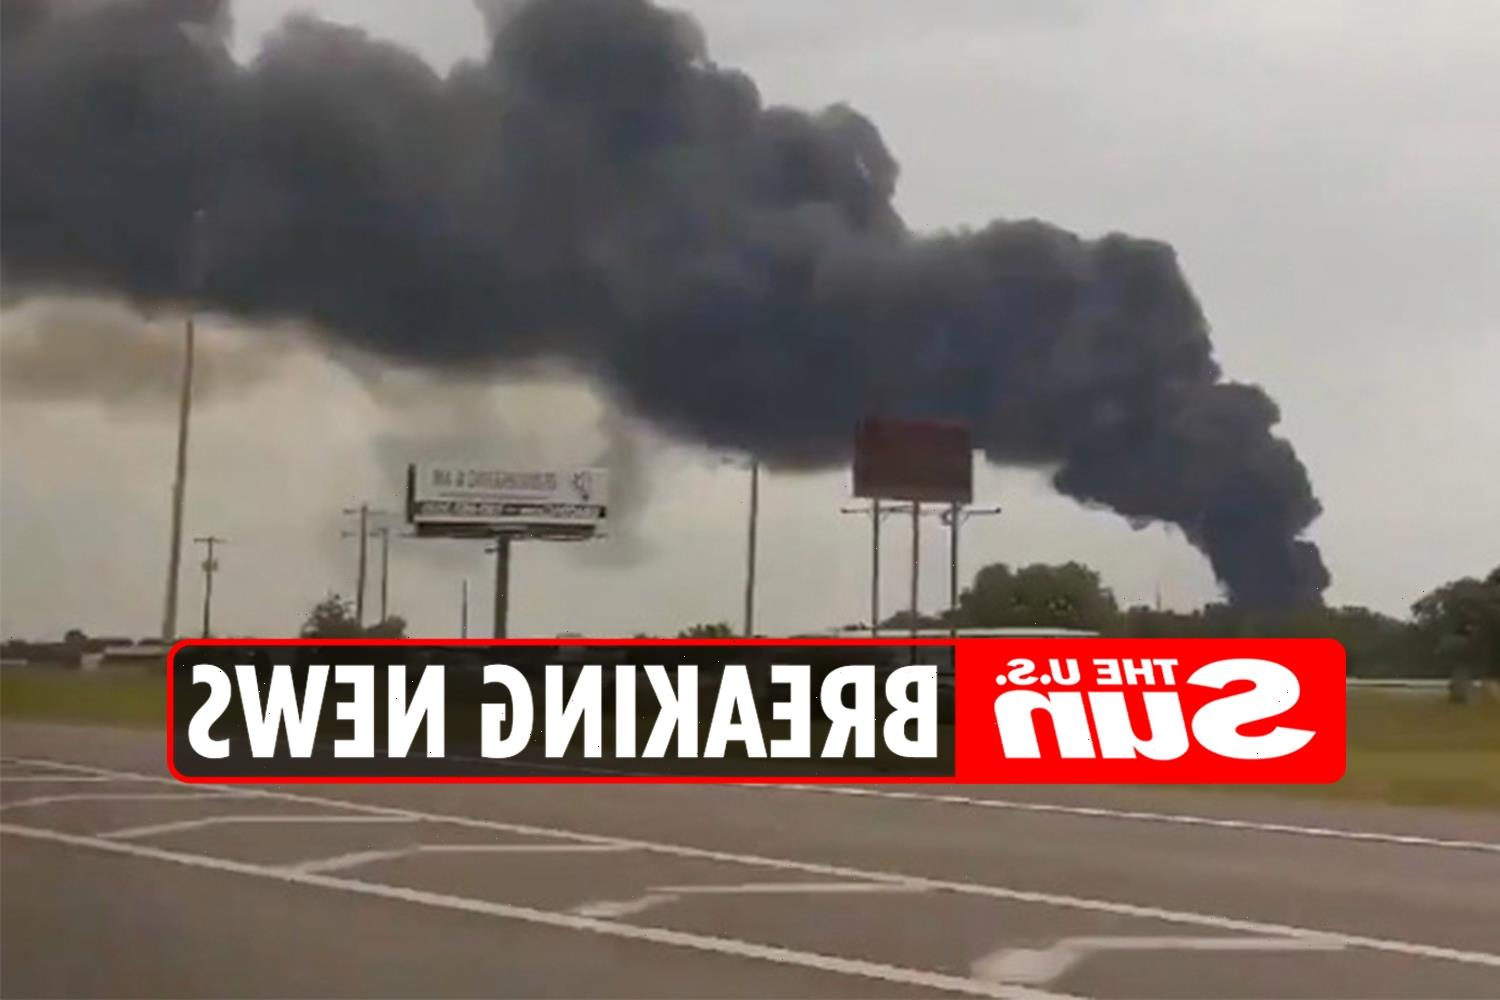 Ardmore plant explosion: 'One dead' after huge fire and blast at asphalt business in Oklahoma